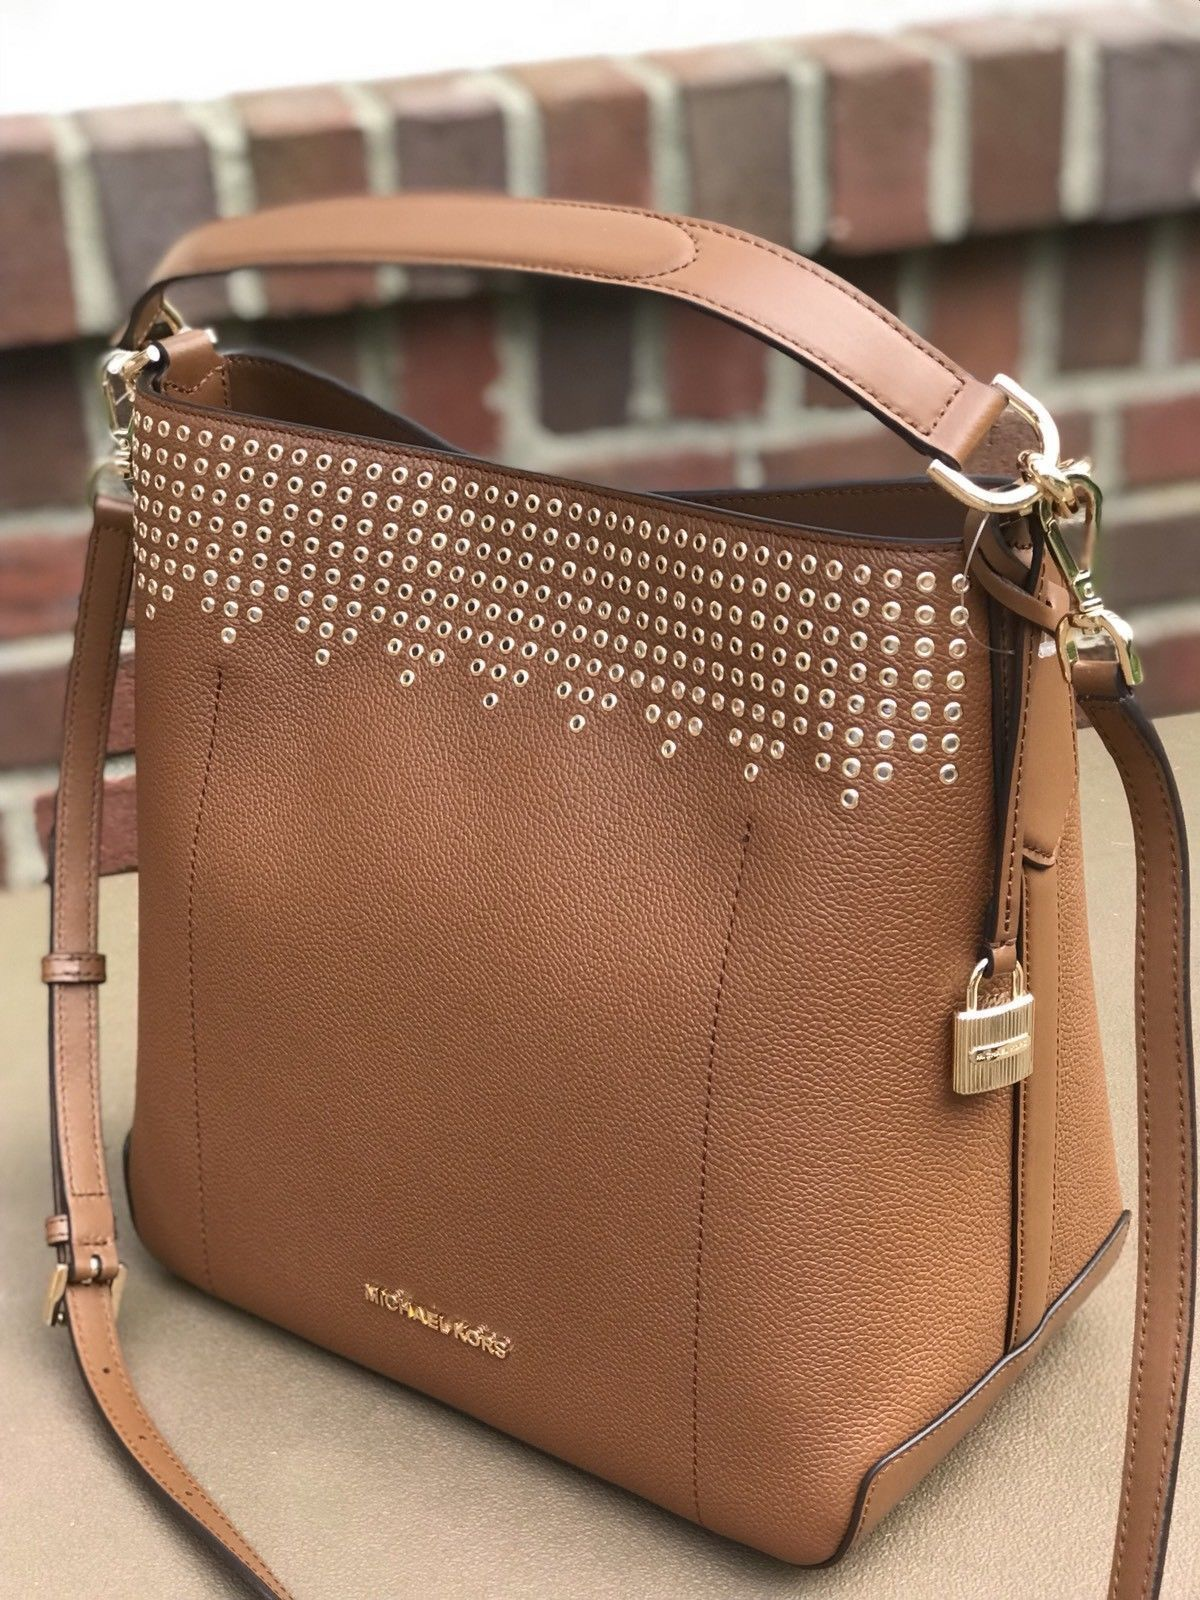 ad6c1f593f7d Michael Kors Hayes Bucket Luggage Brown Large Convertible Shoulder Bag  Wallet  149.0